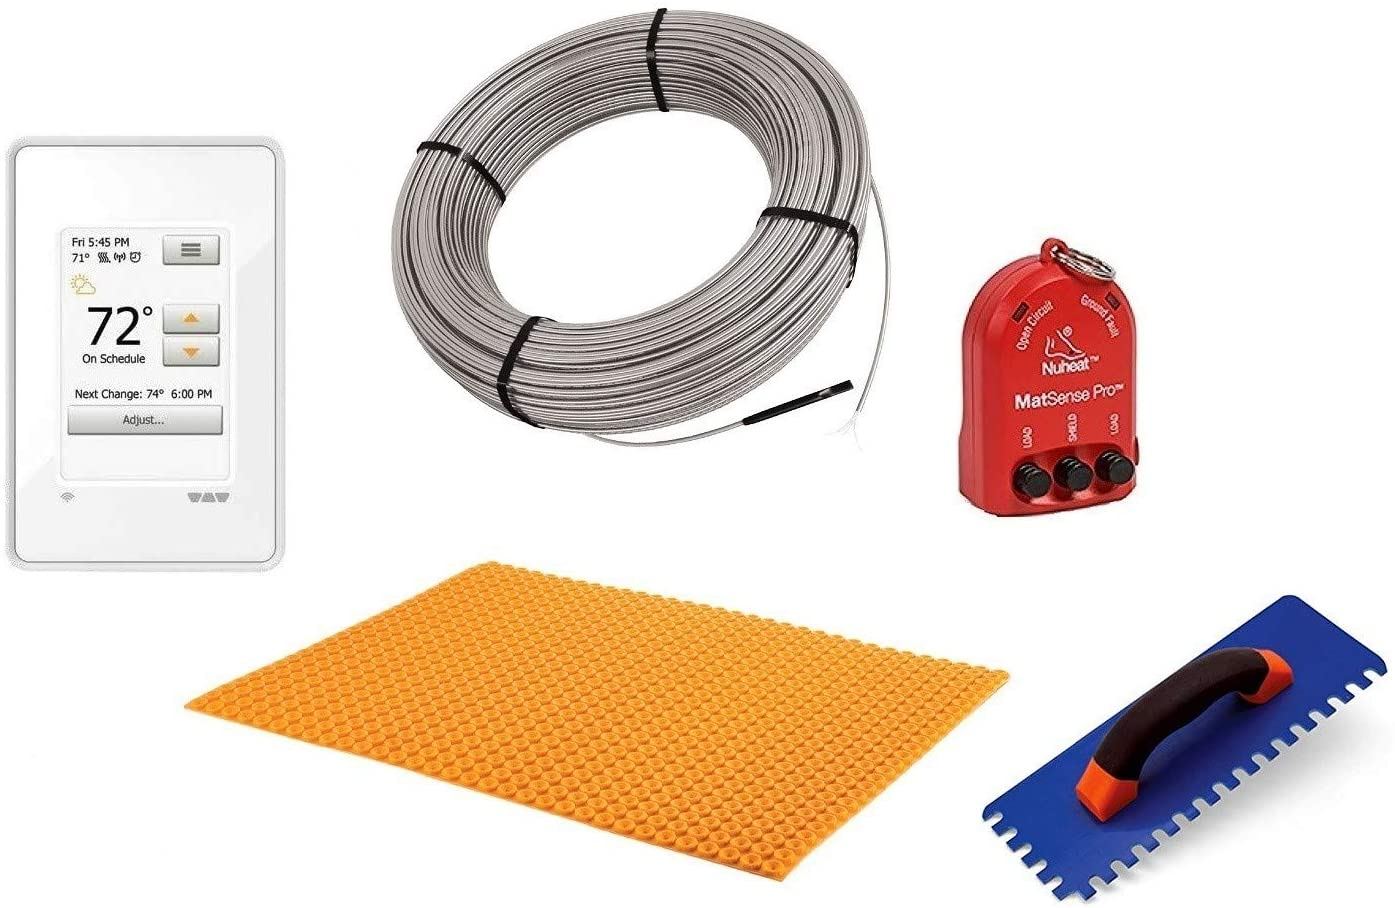 Schluter Ditra Performance Floor Heating Kit -64 Square Feet- Includes WiFi Touchscreen Programmable Thermostat, Heat Membrane, Heat Cable DHEHK12064, Safe Installation Tools